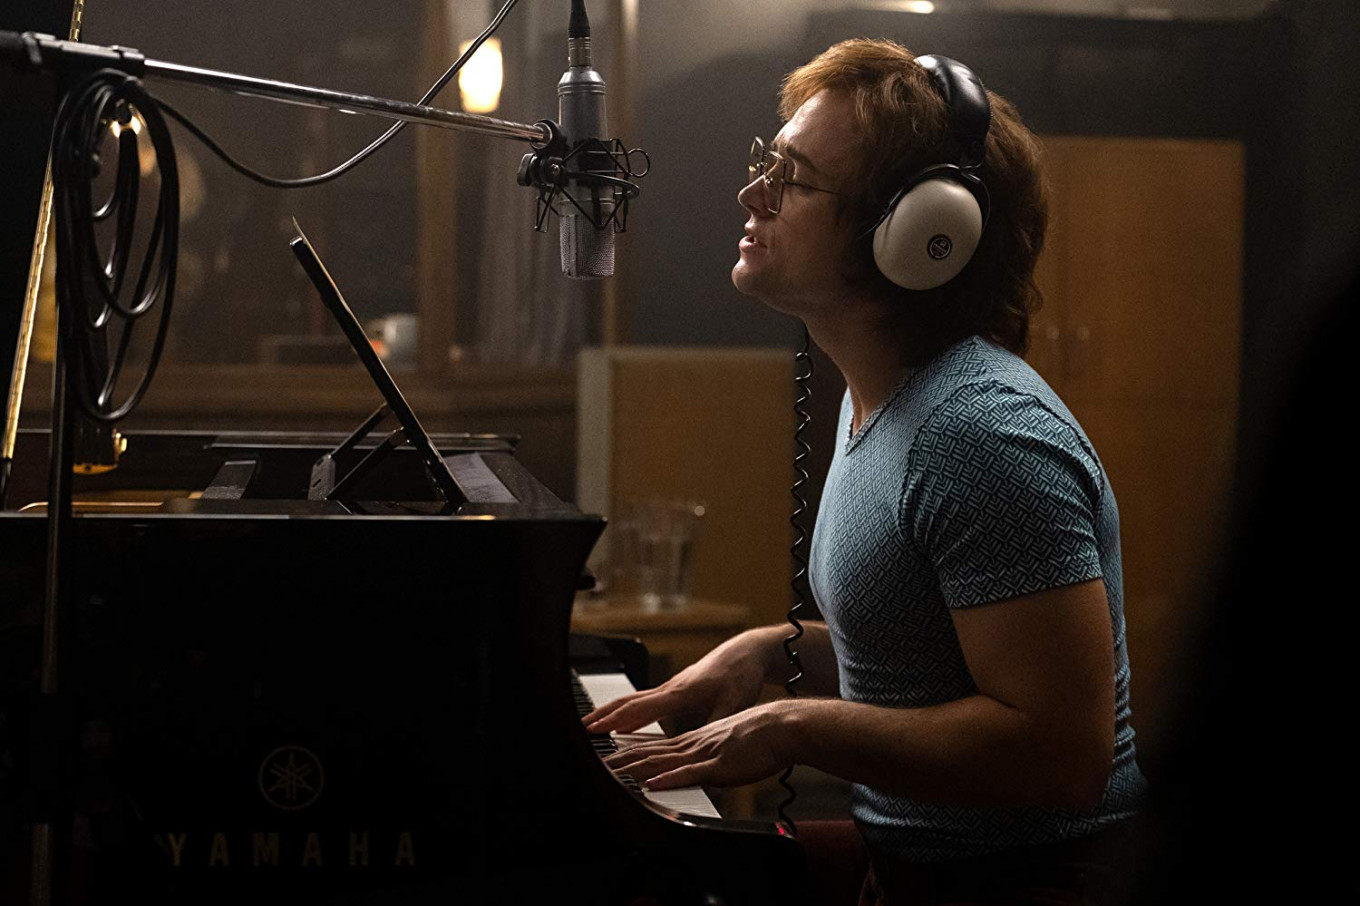 Russia cuts gay scenes from Elton John biopic 'Rocketman'